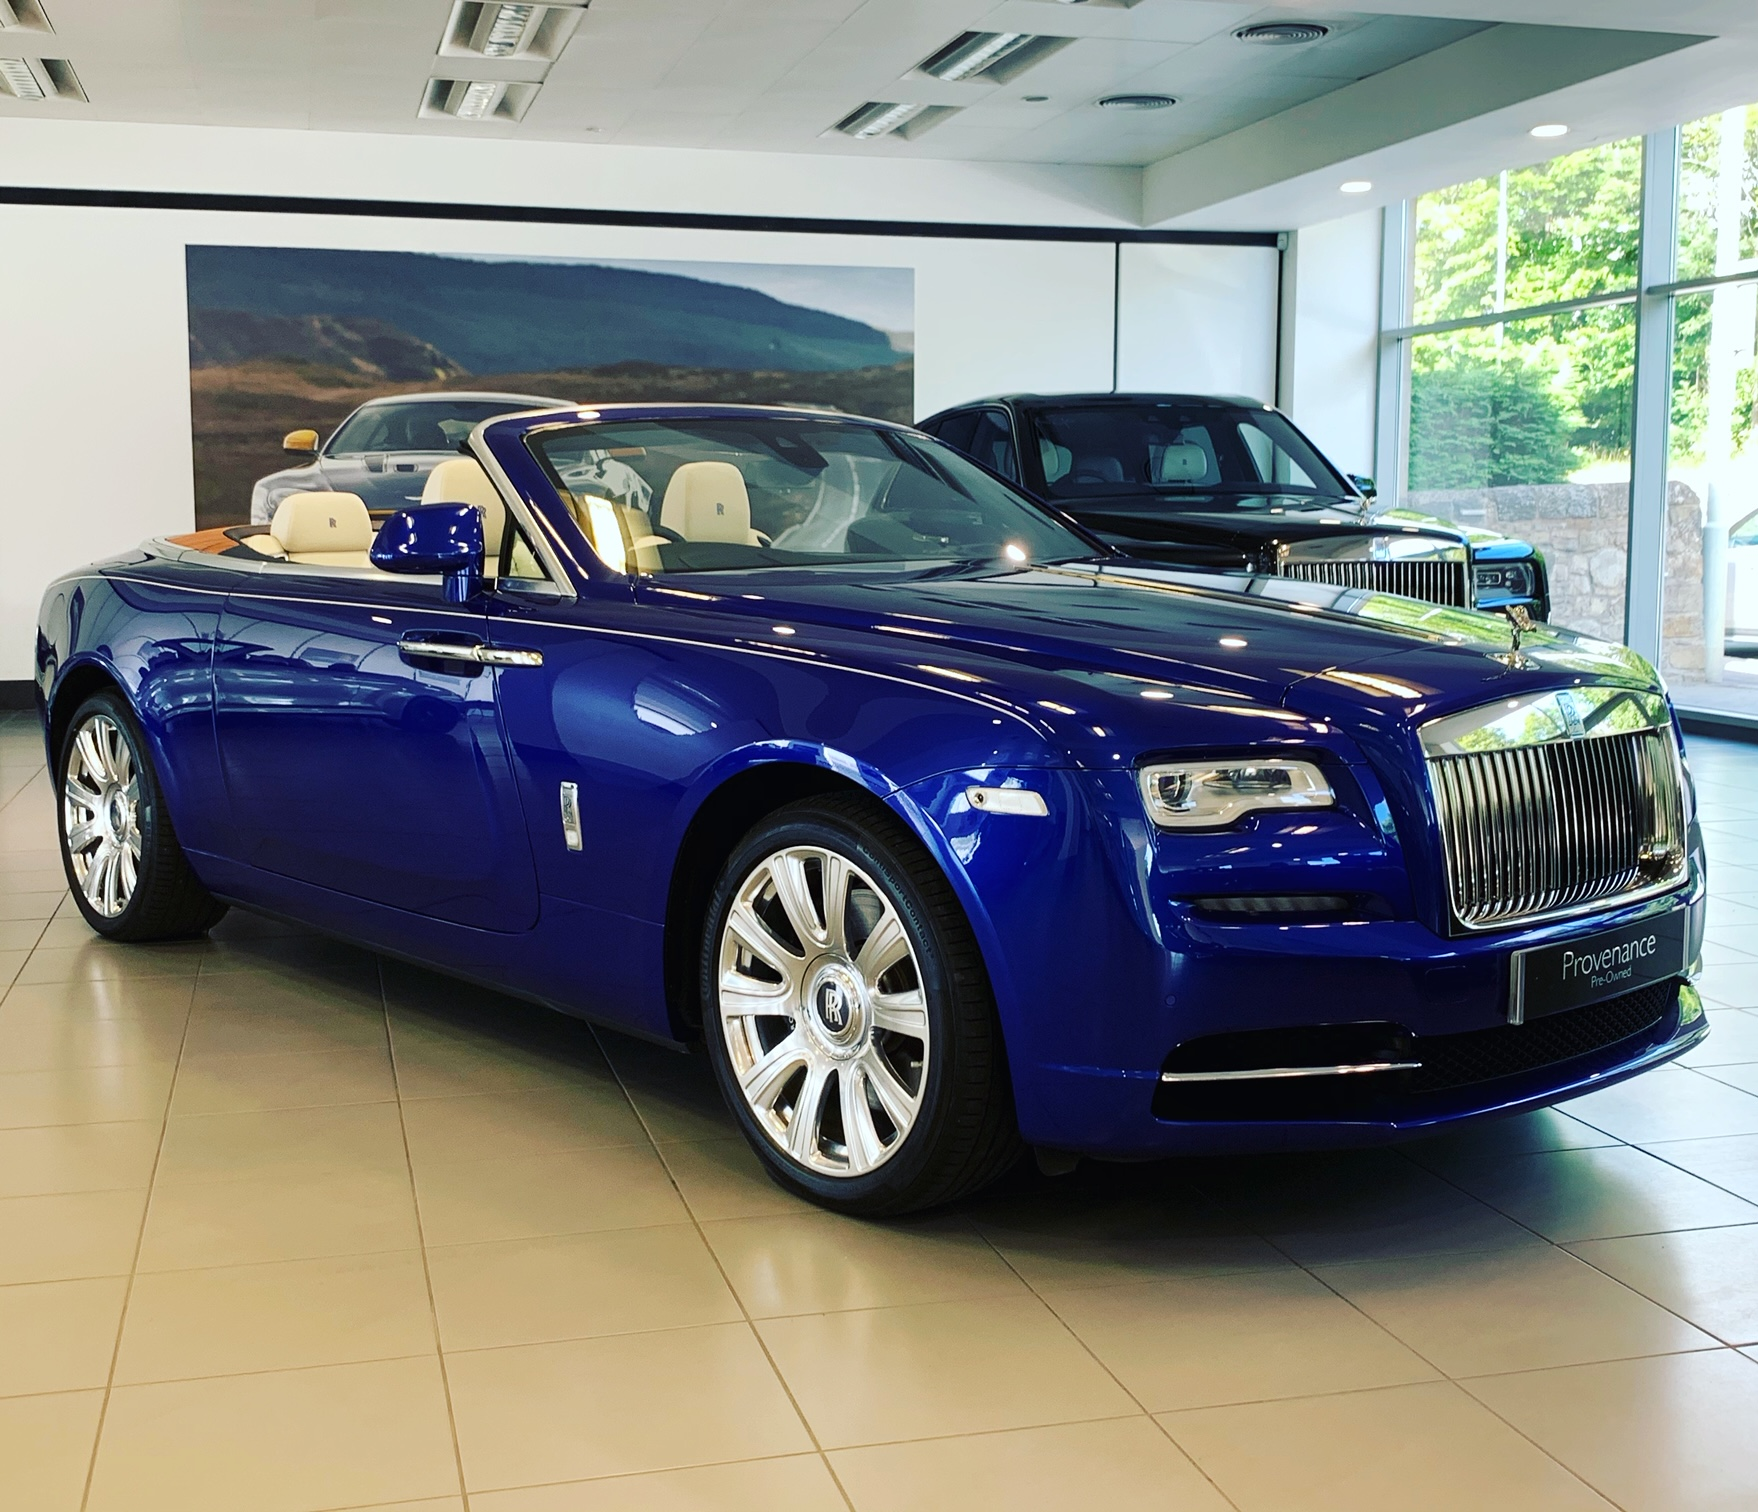 Rolls-Royce Dawn V12 6.6 Automatic 2 door Cabriolet (2017)